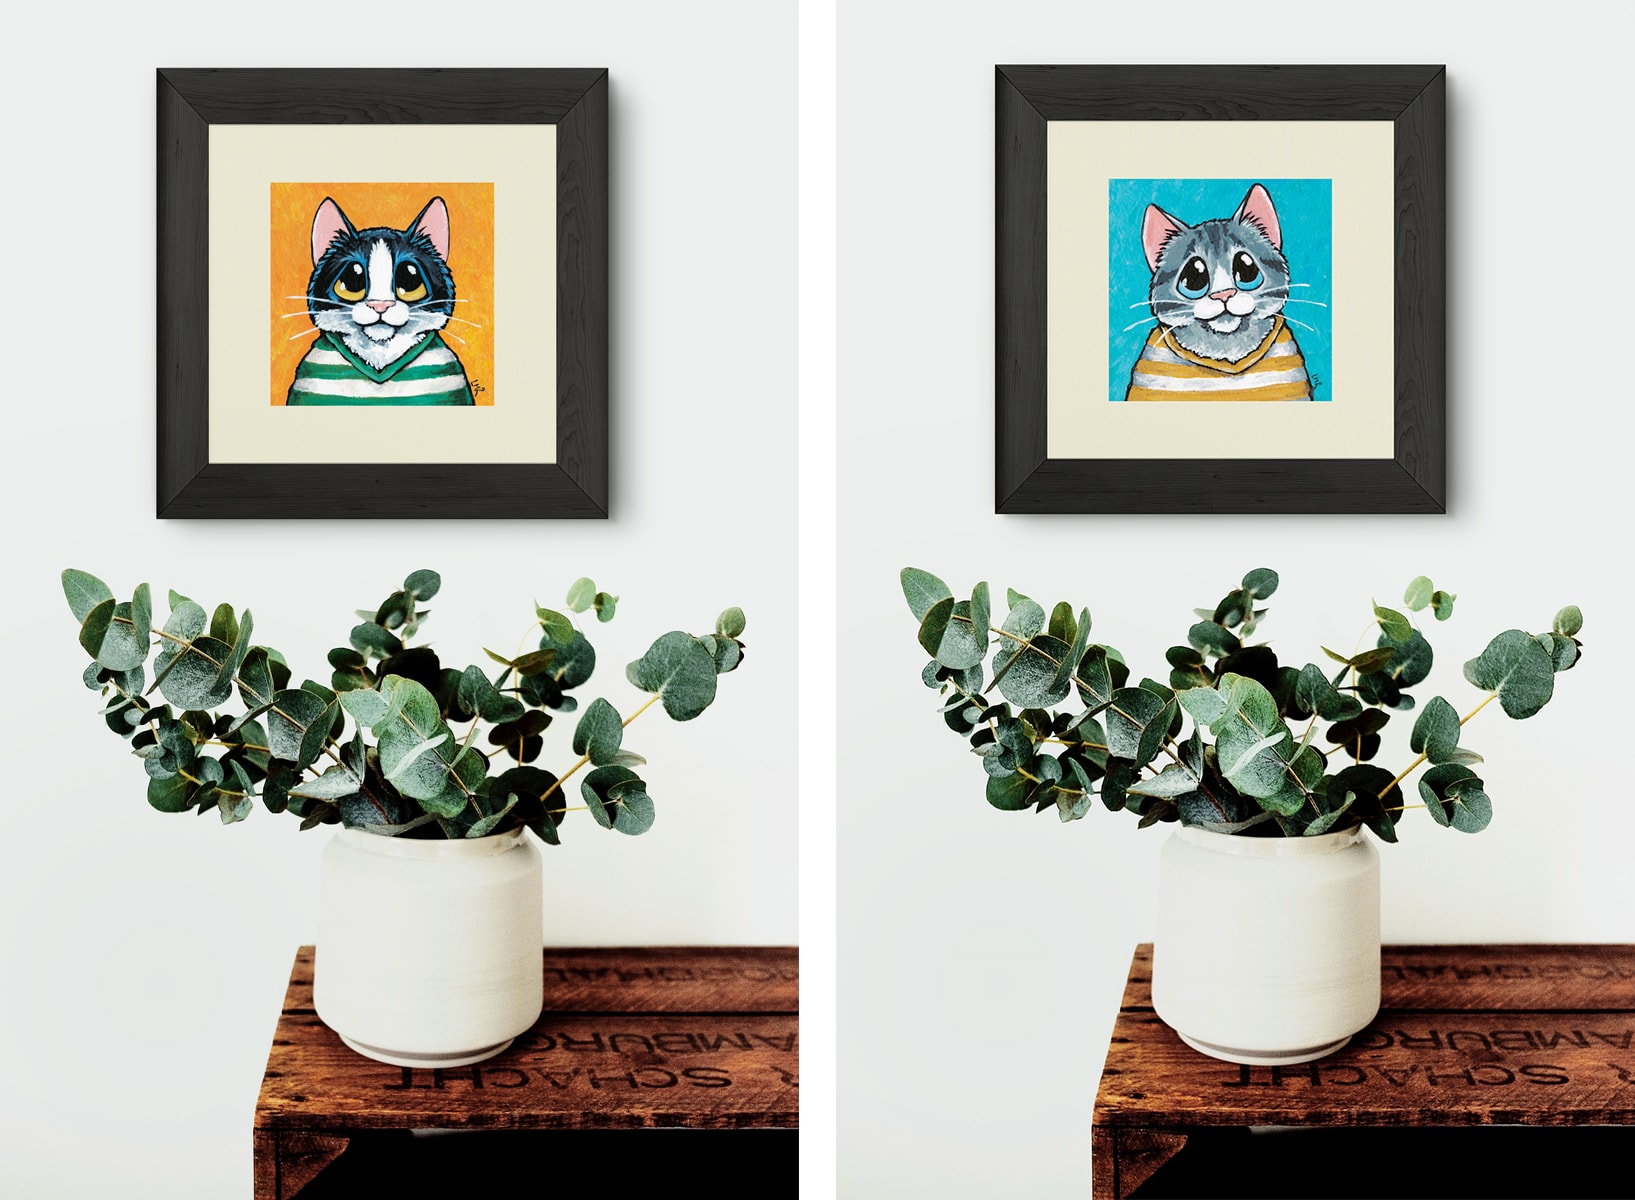 Cats Wearing Striped Shirts Illustrations